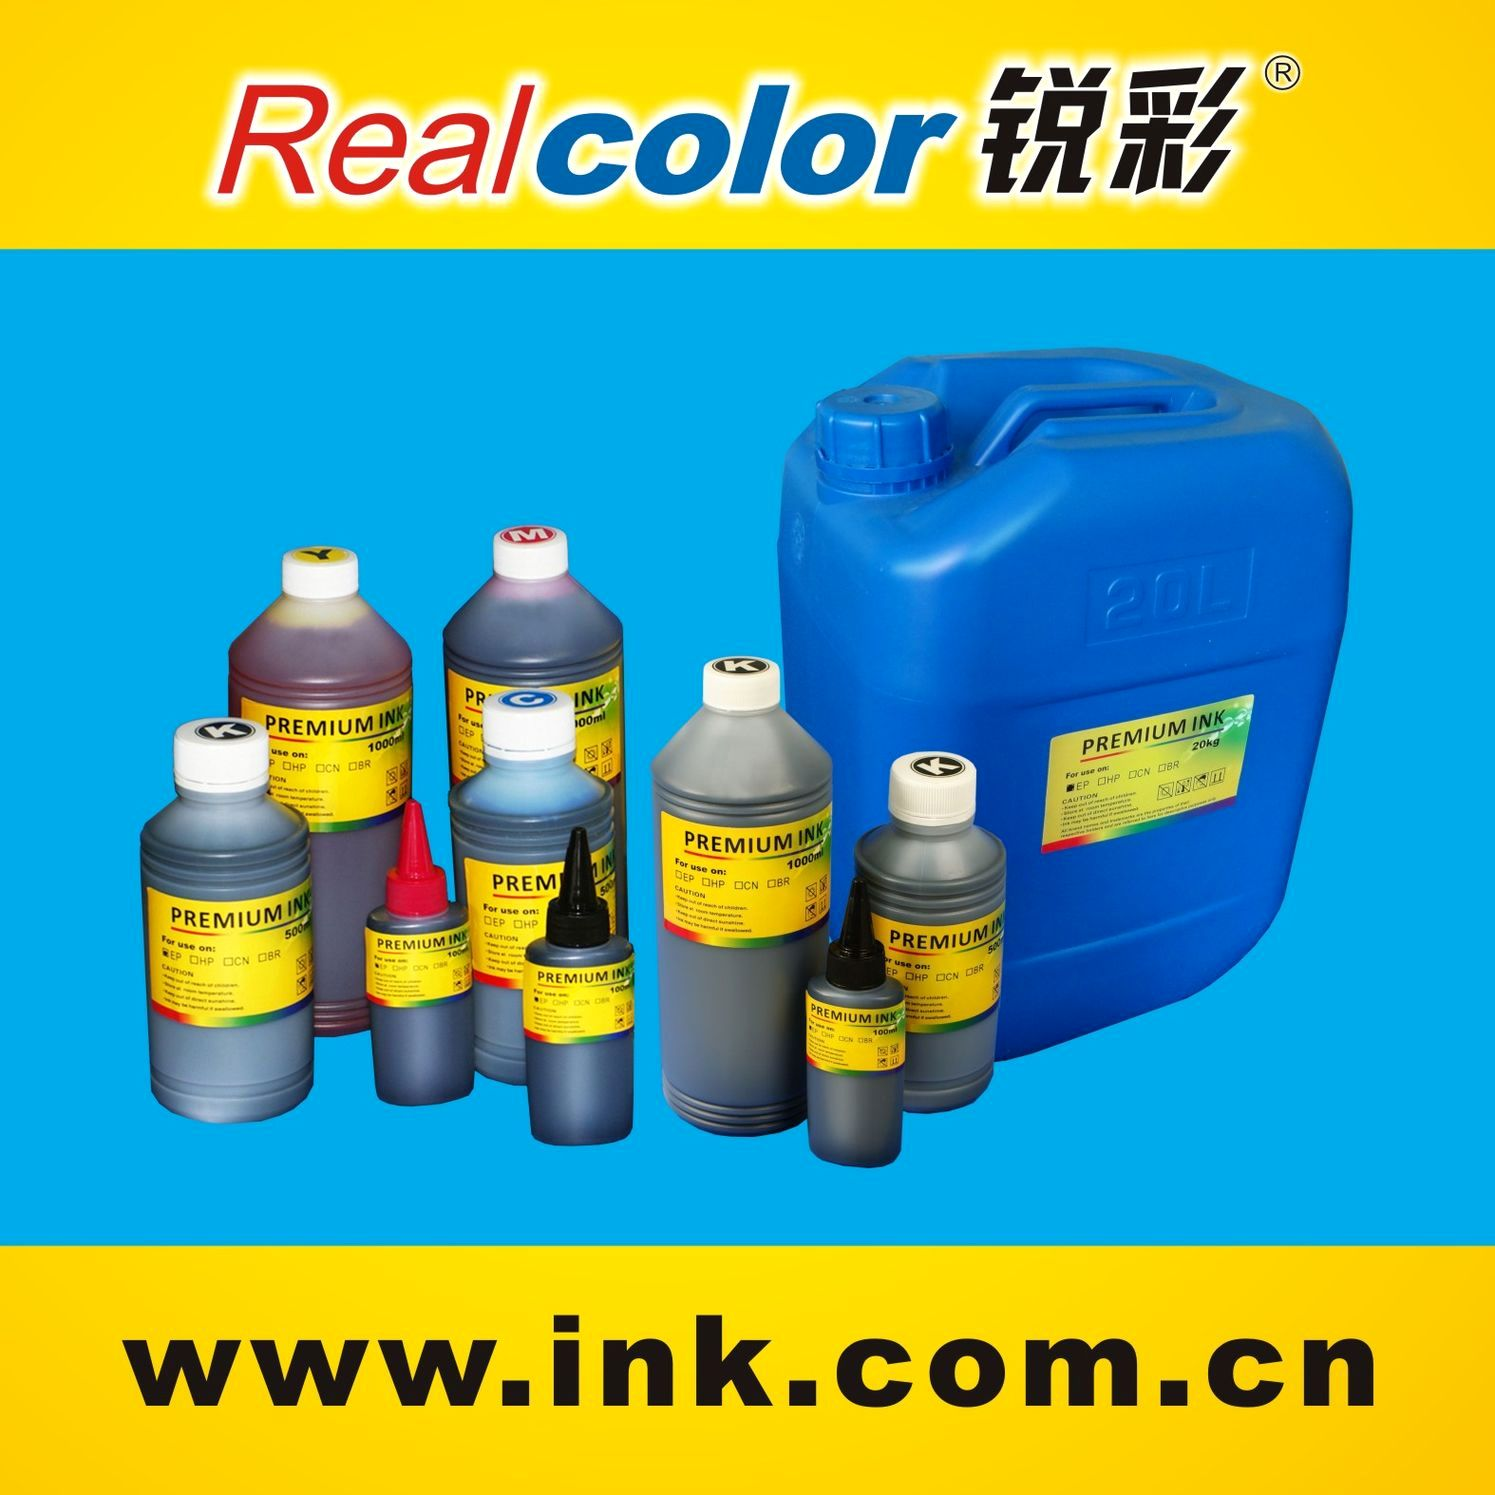 6 Vivid Colors ink for Epson,canon,hp and brother Inkjet Printer